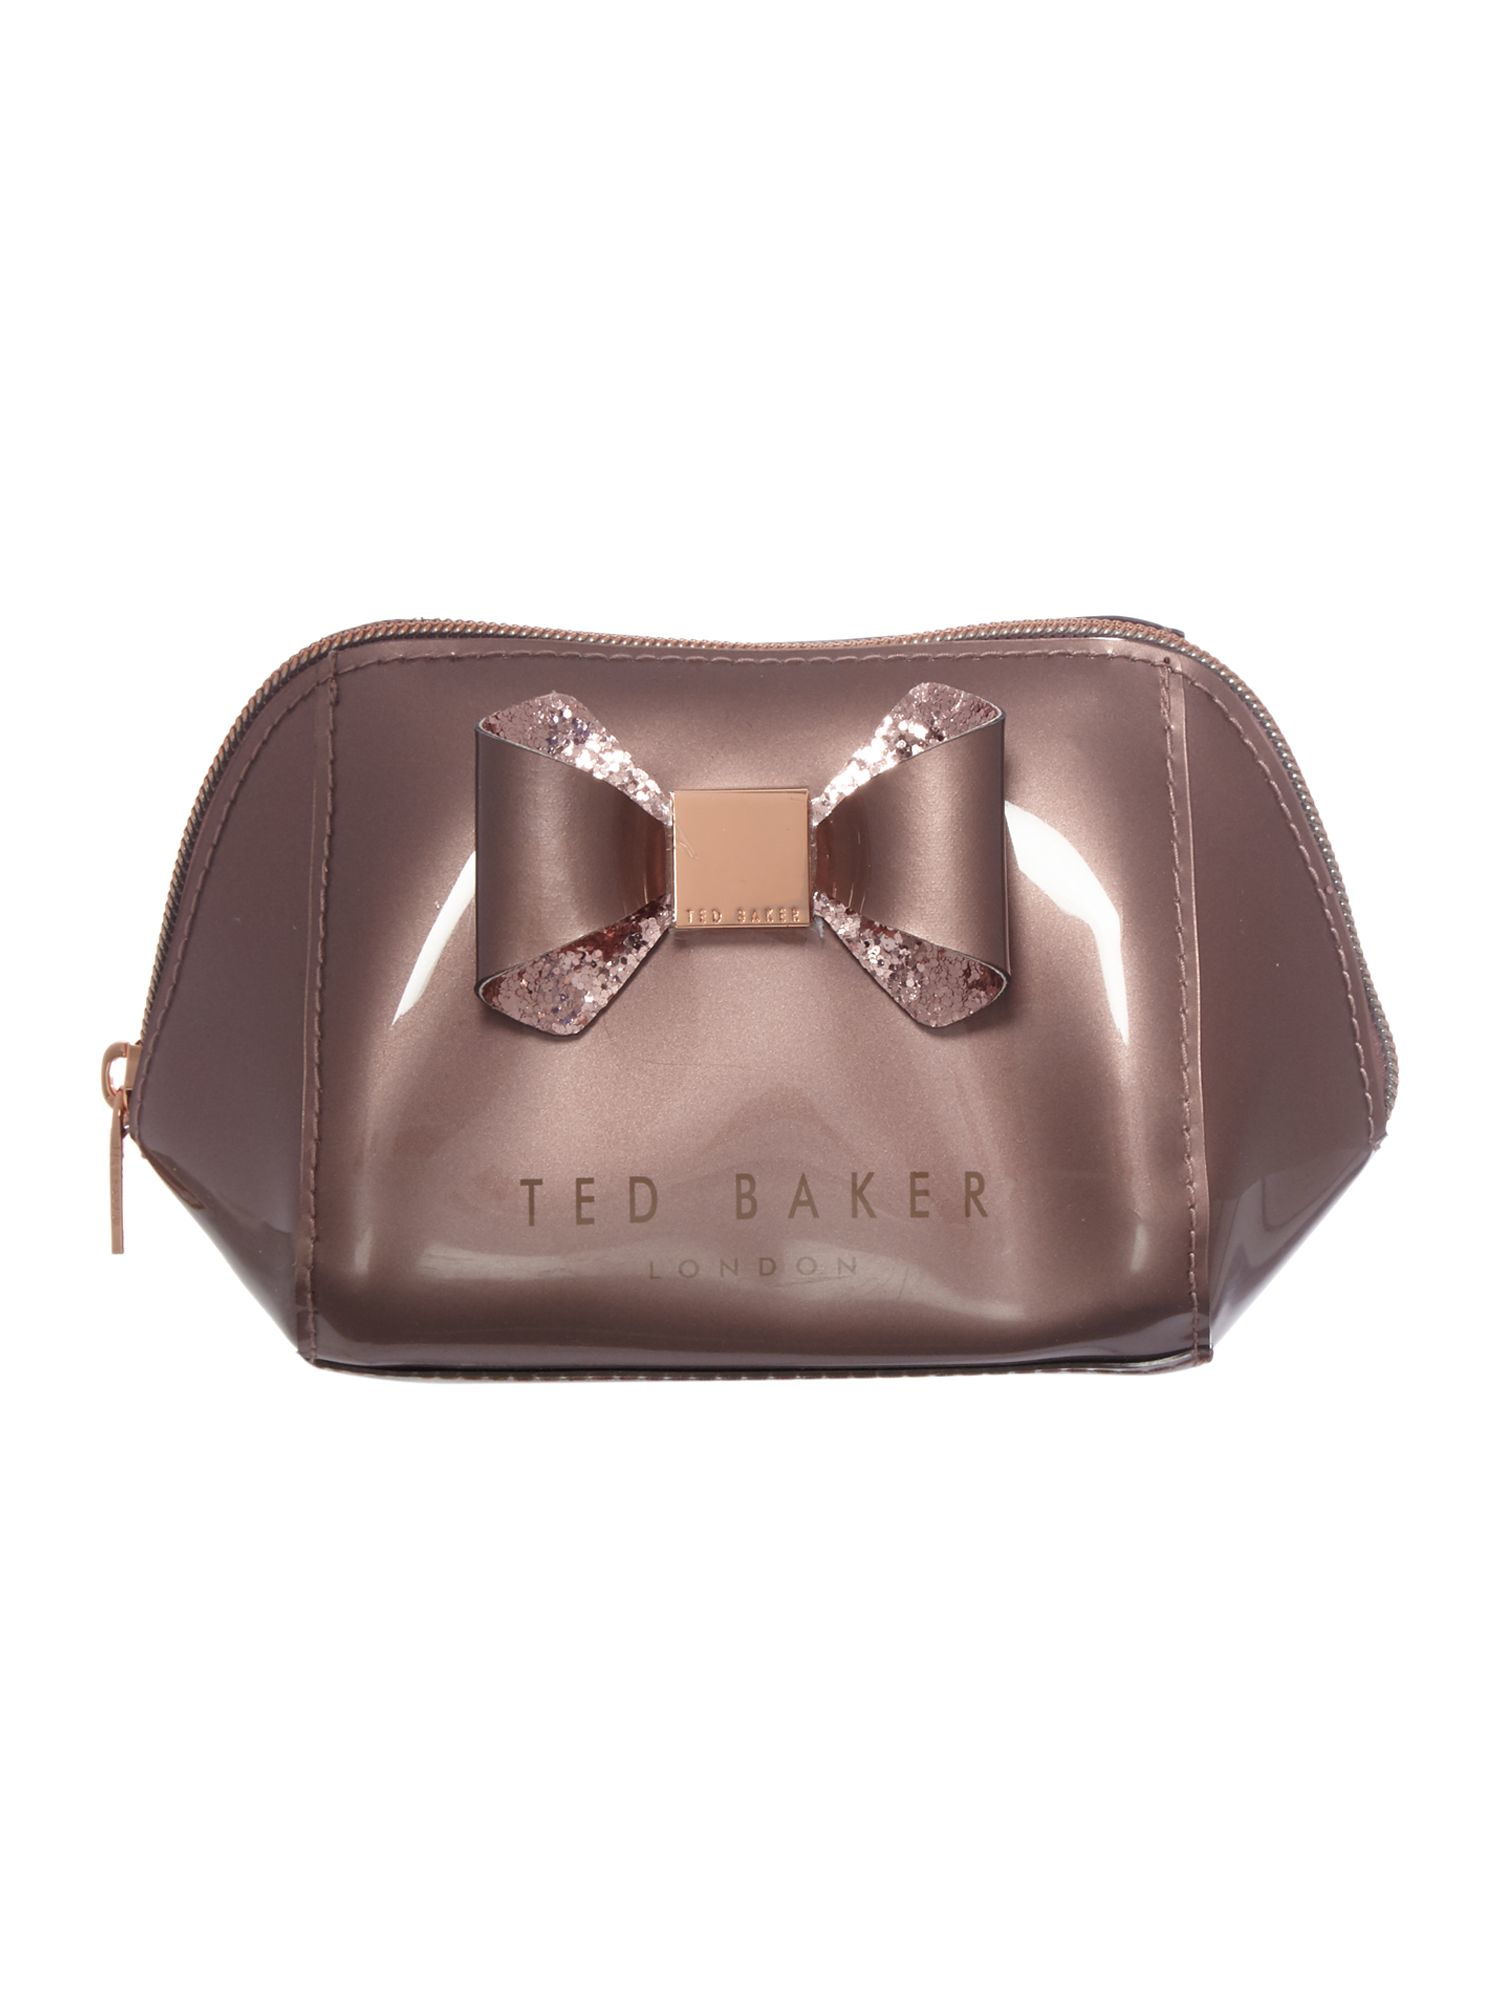 558970d562 Ted Baker Jillie Pink Small Bow Cosmetic Bag in Pink - Lyst